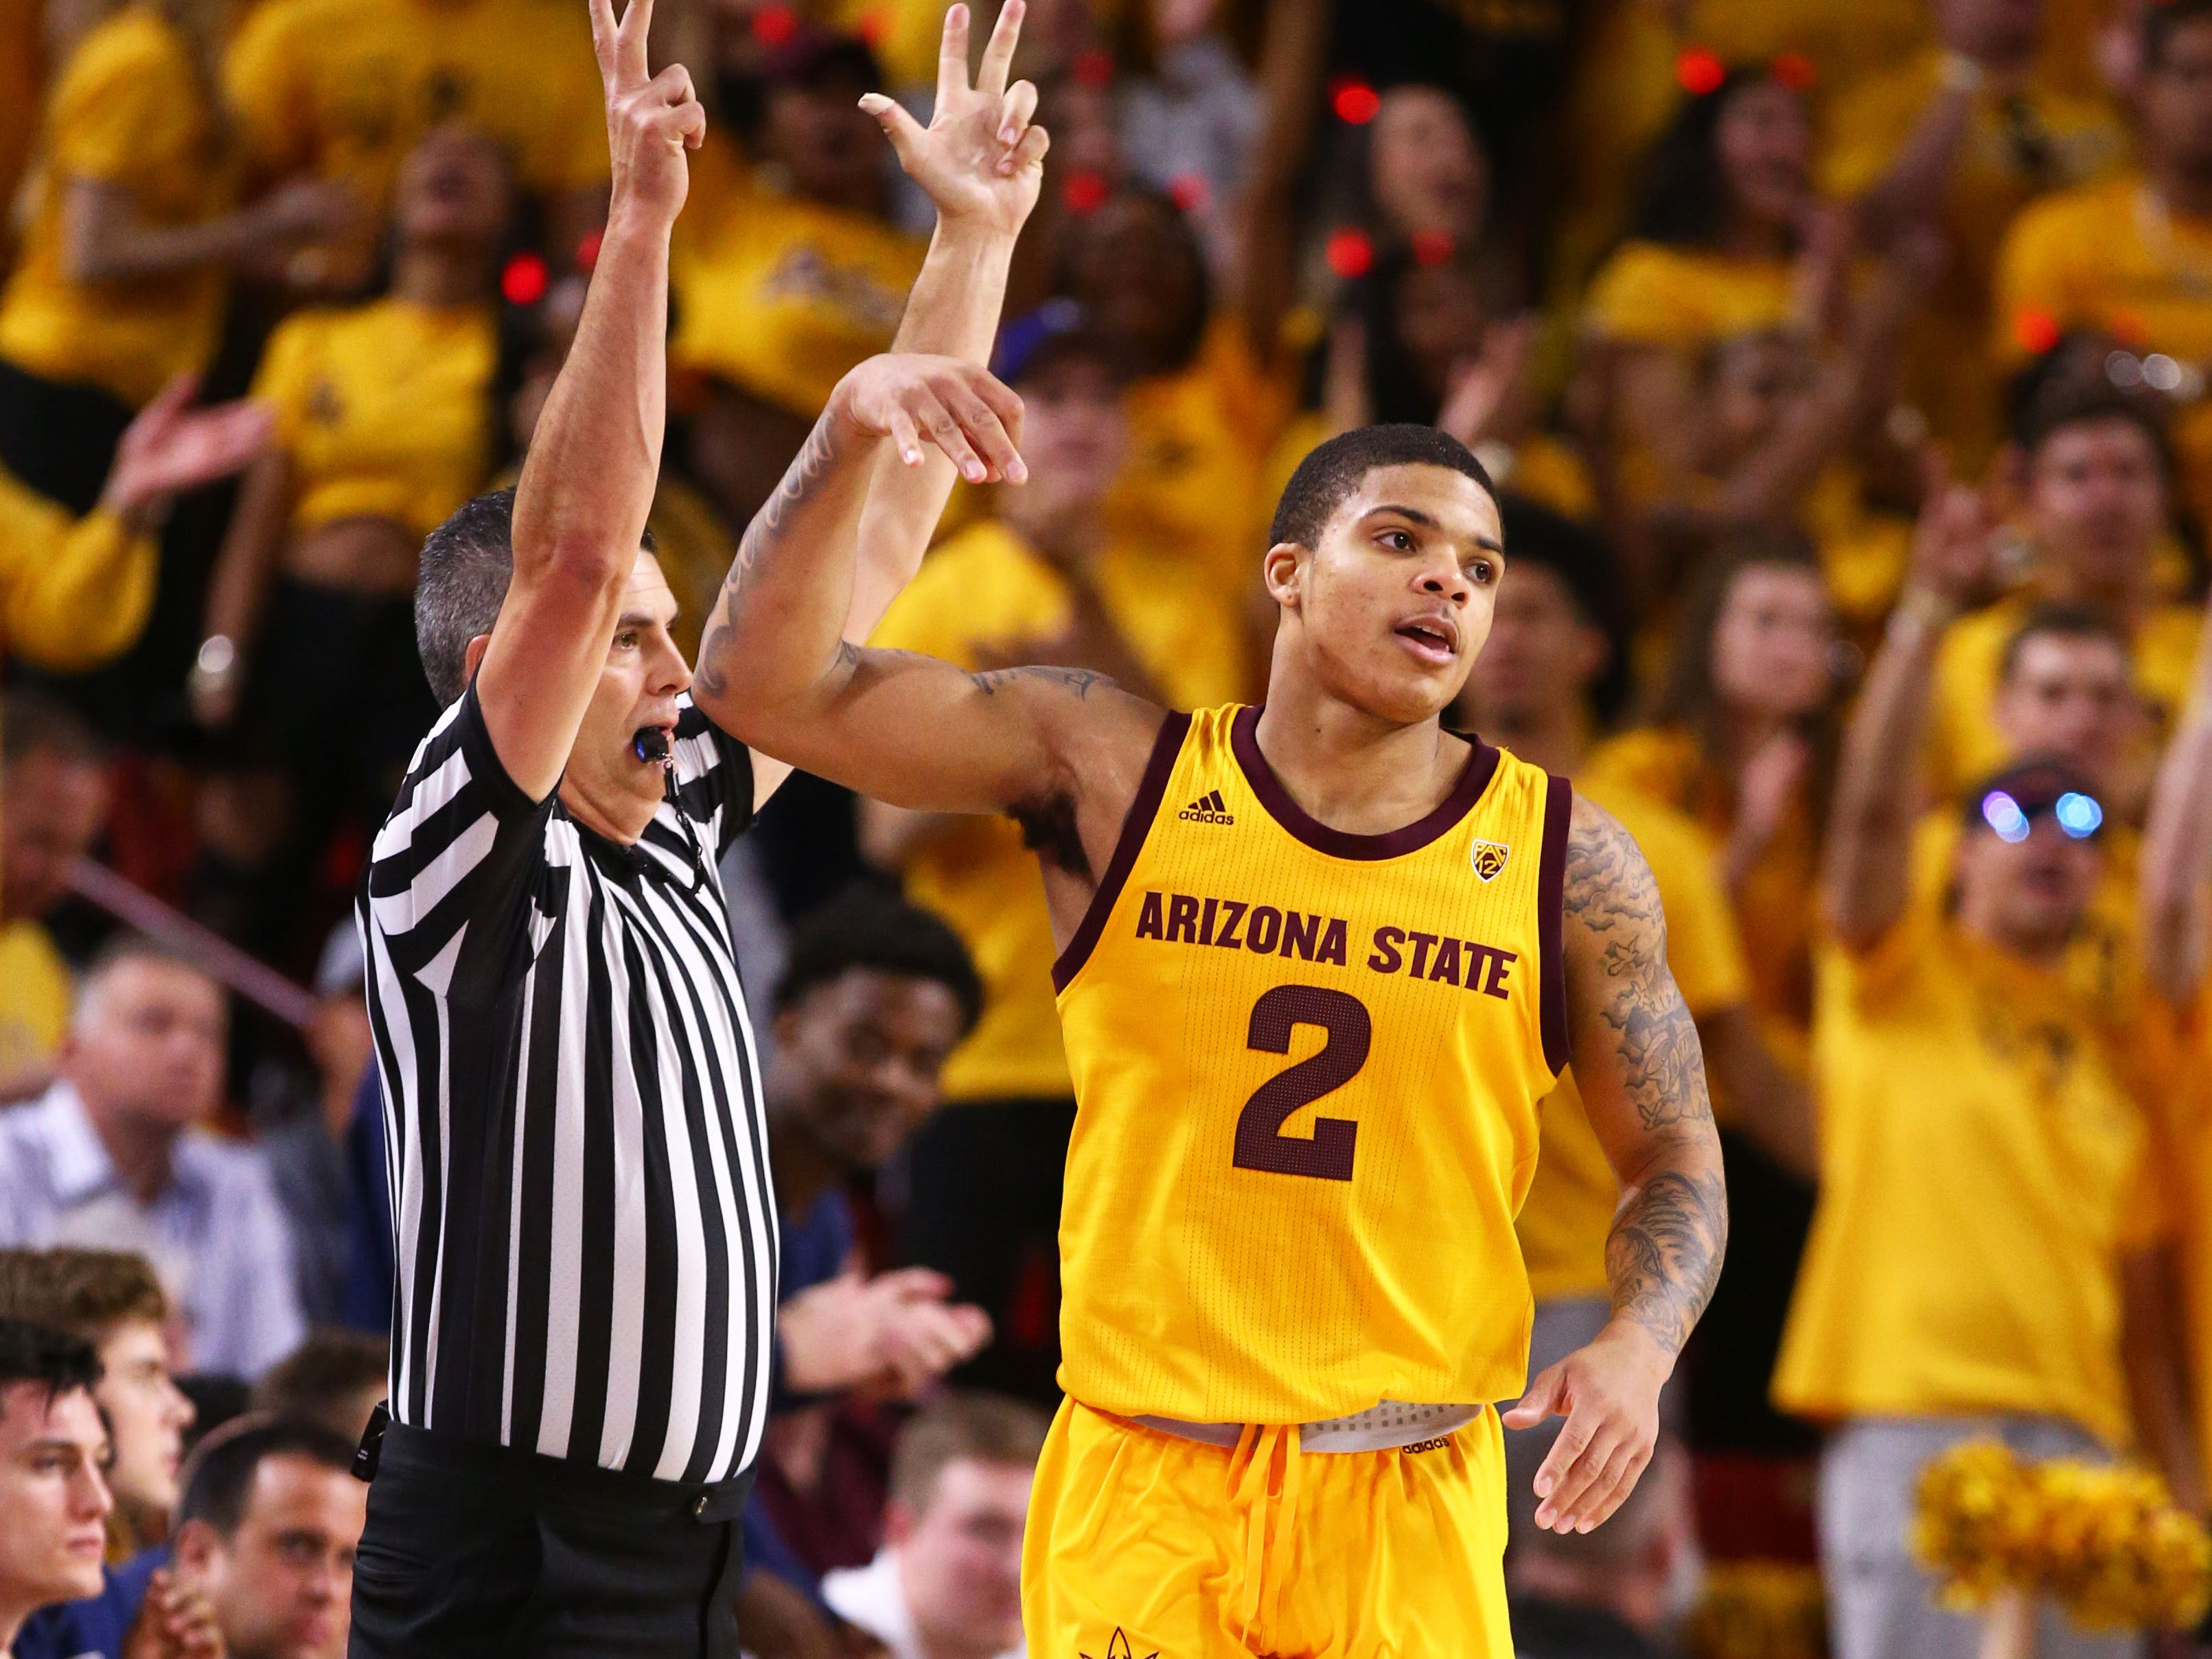 Arizona State guard Rob Edwards reacts after making a 3-pointer against Arizona in the first half on Jan. 31 at Wells Fargo Arena in Tempe.